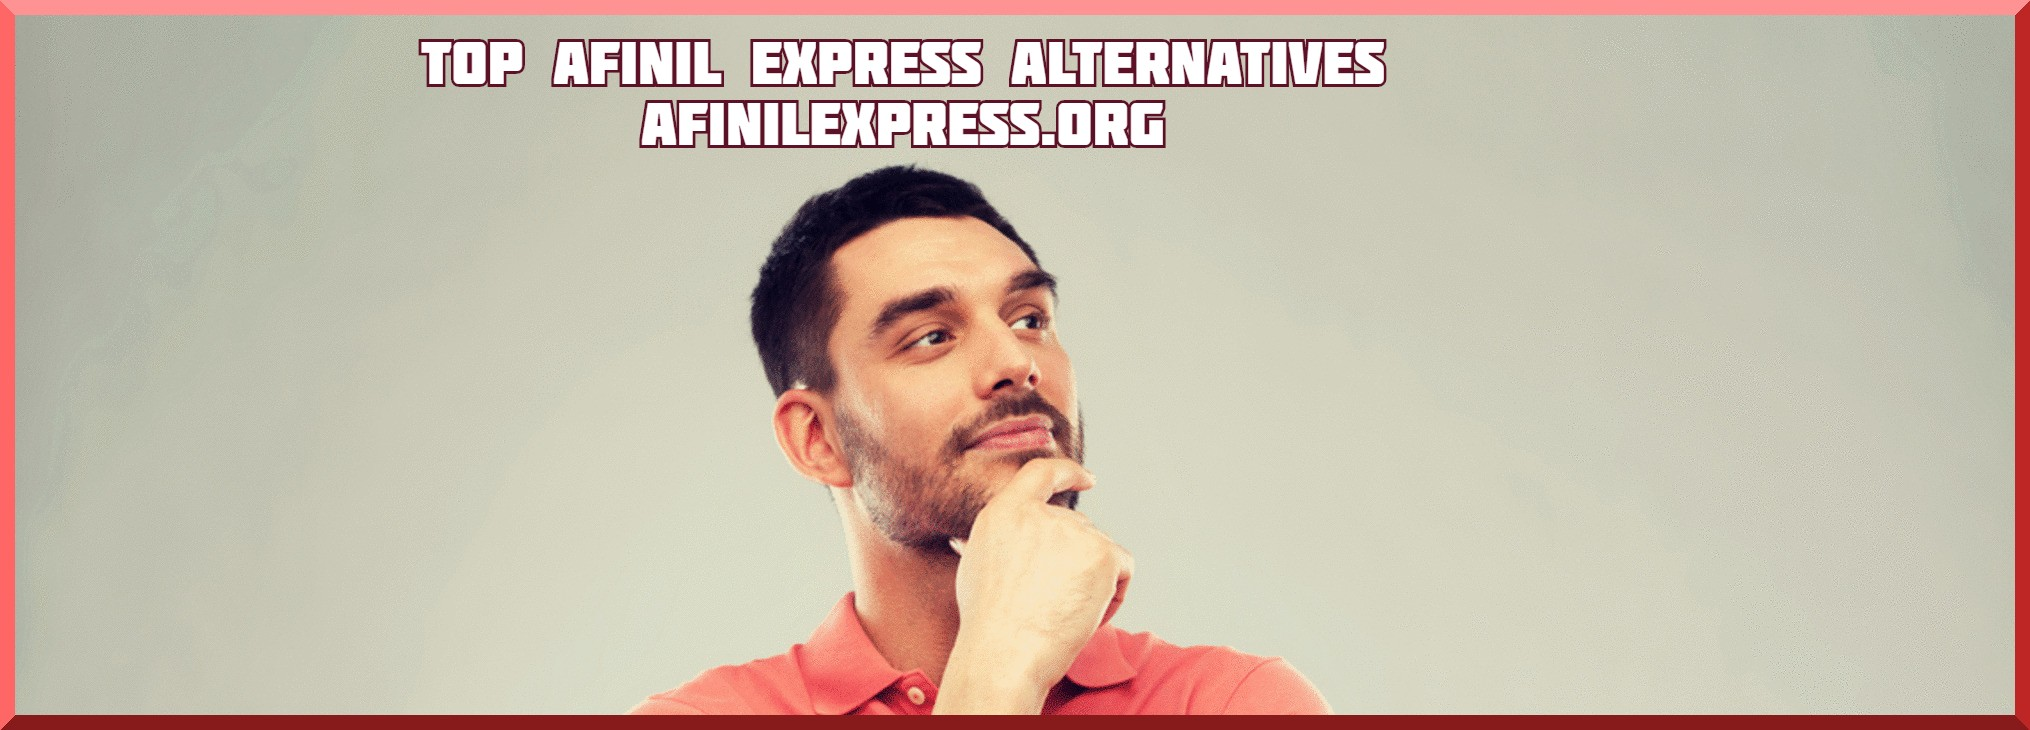 Top Afinil Express Alternatives, afinil express review